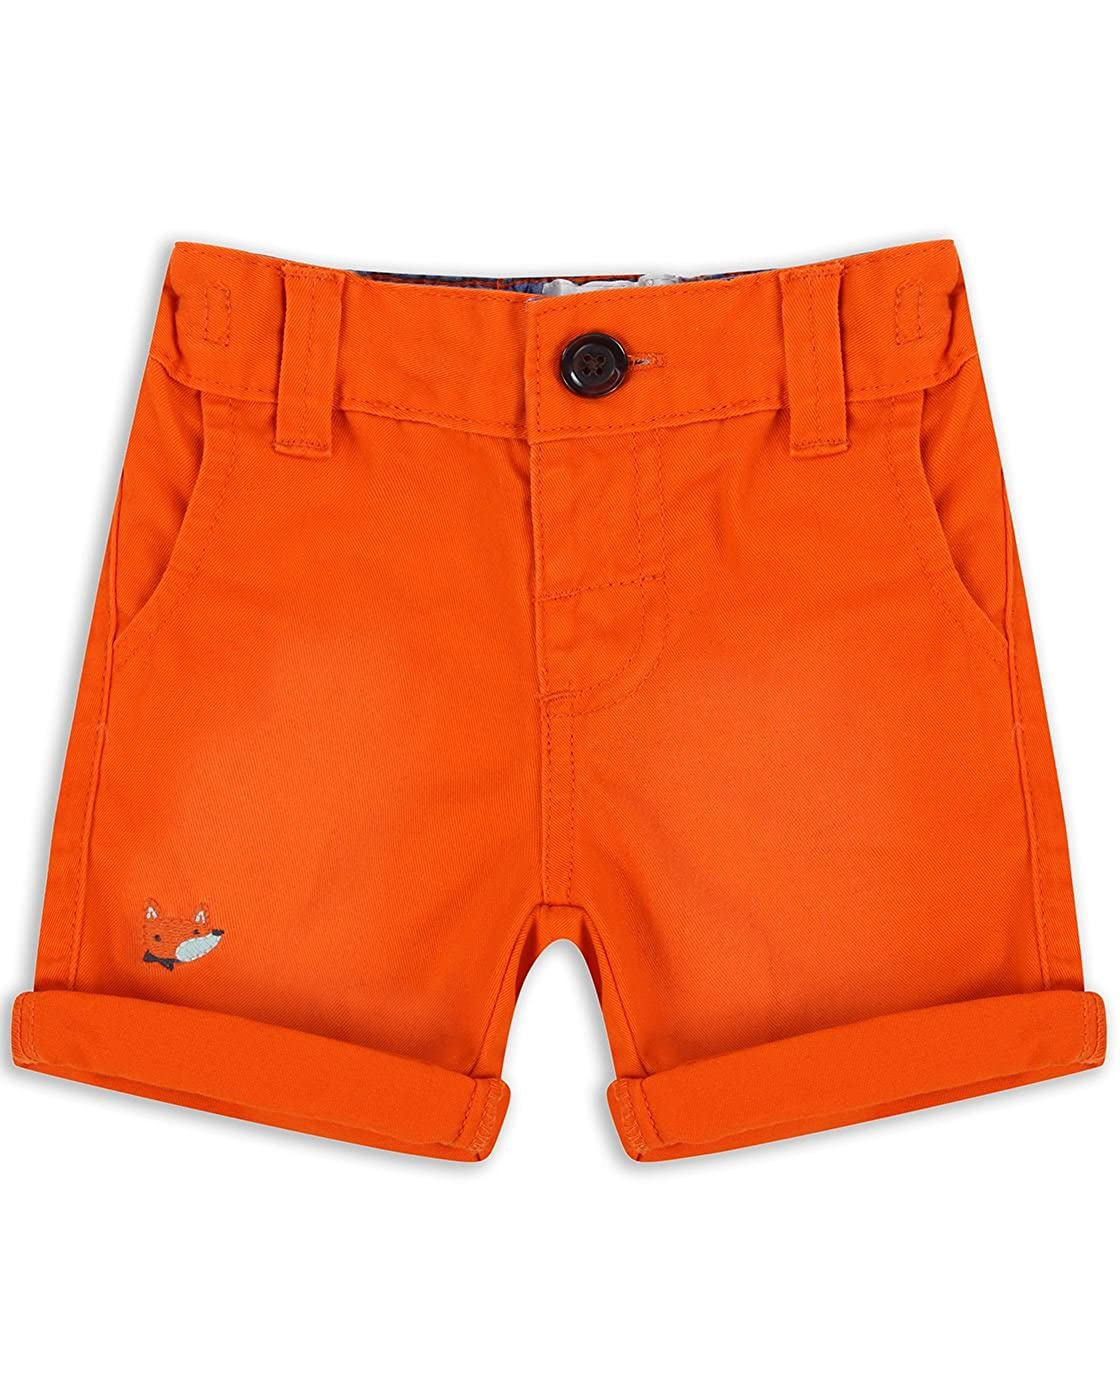 The Essential One - Bébé Enfant Garçons - Short - Orange - EOT268